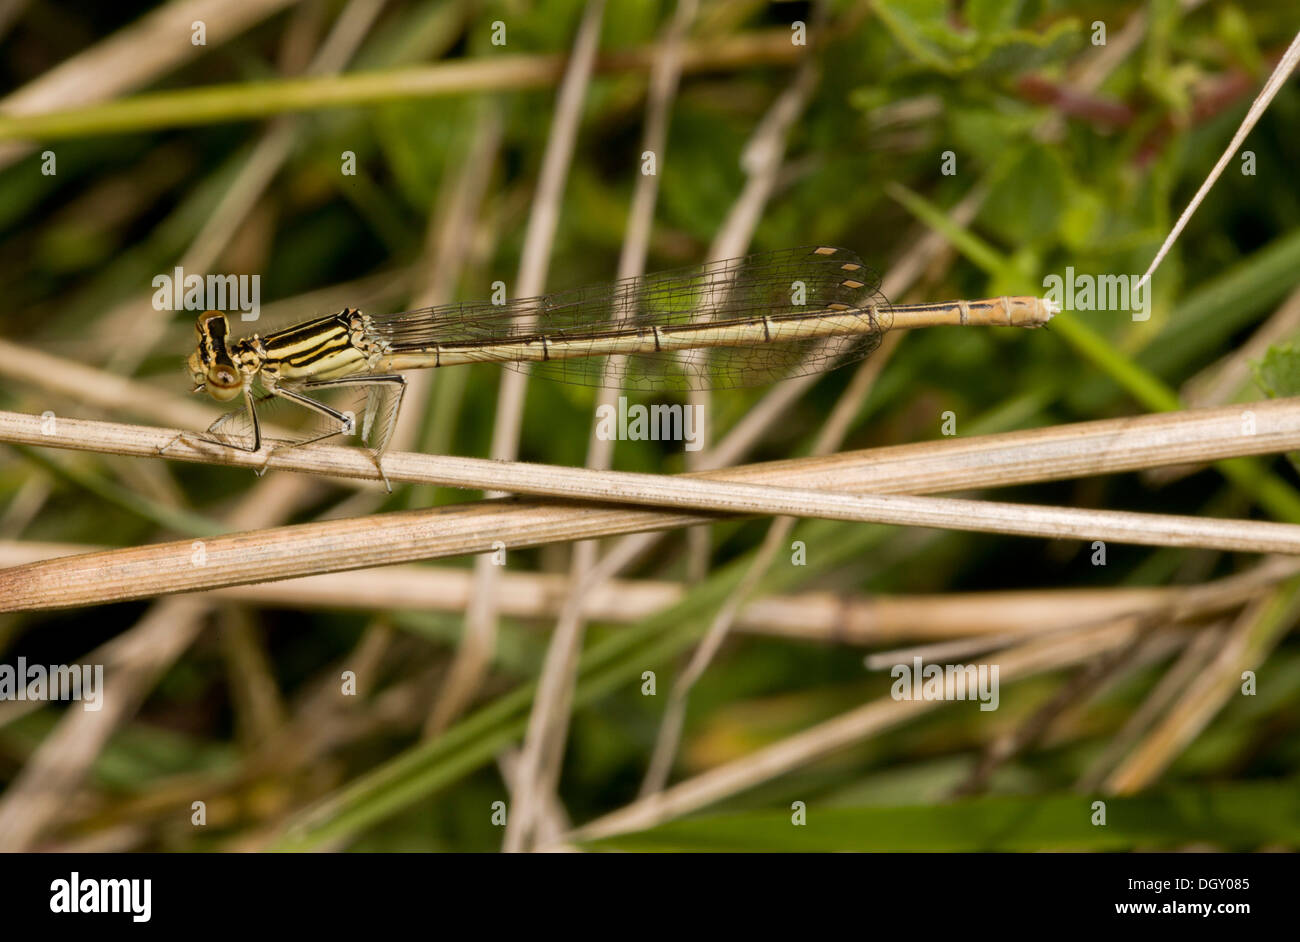 Female Common Winter Damselfly, Sympecma fusca, perched on grass. Brenne, France. - Stock Image